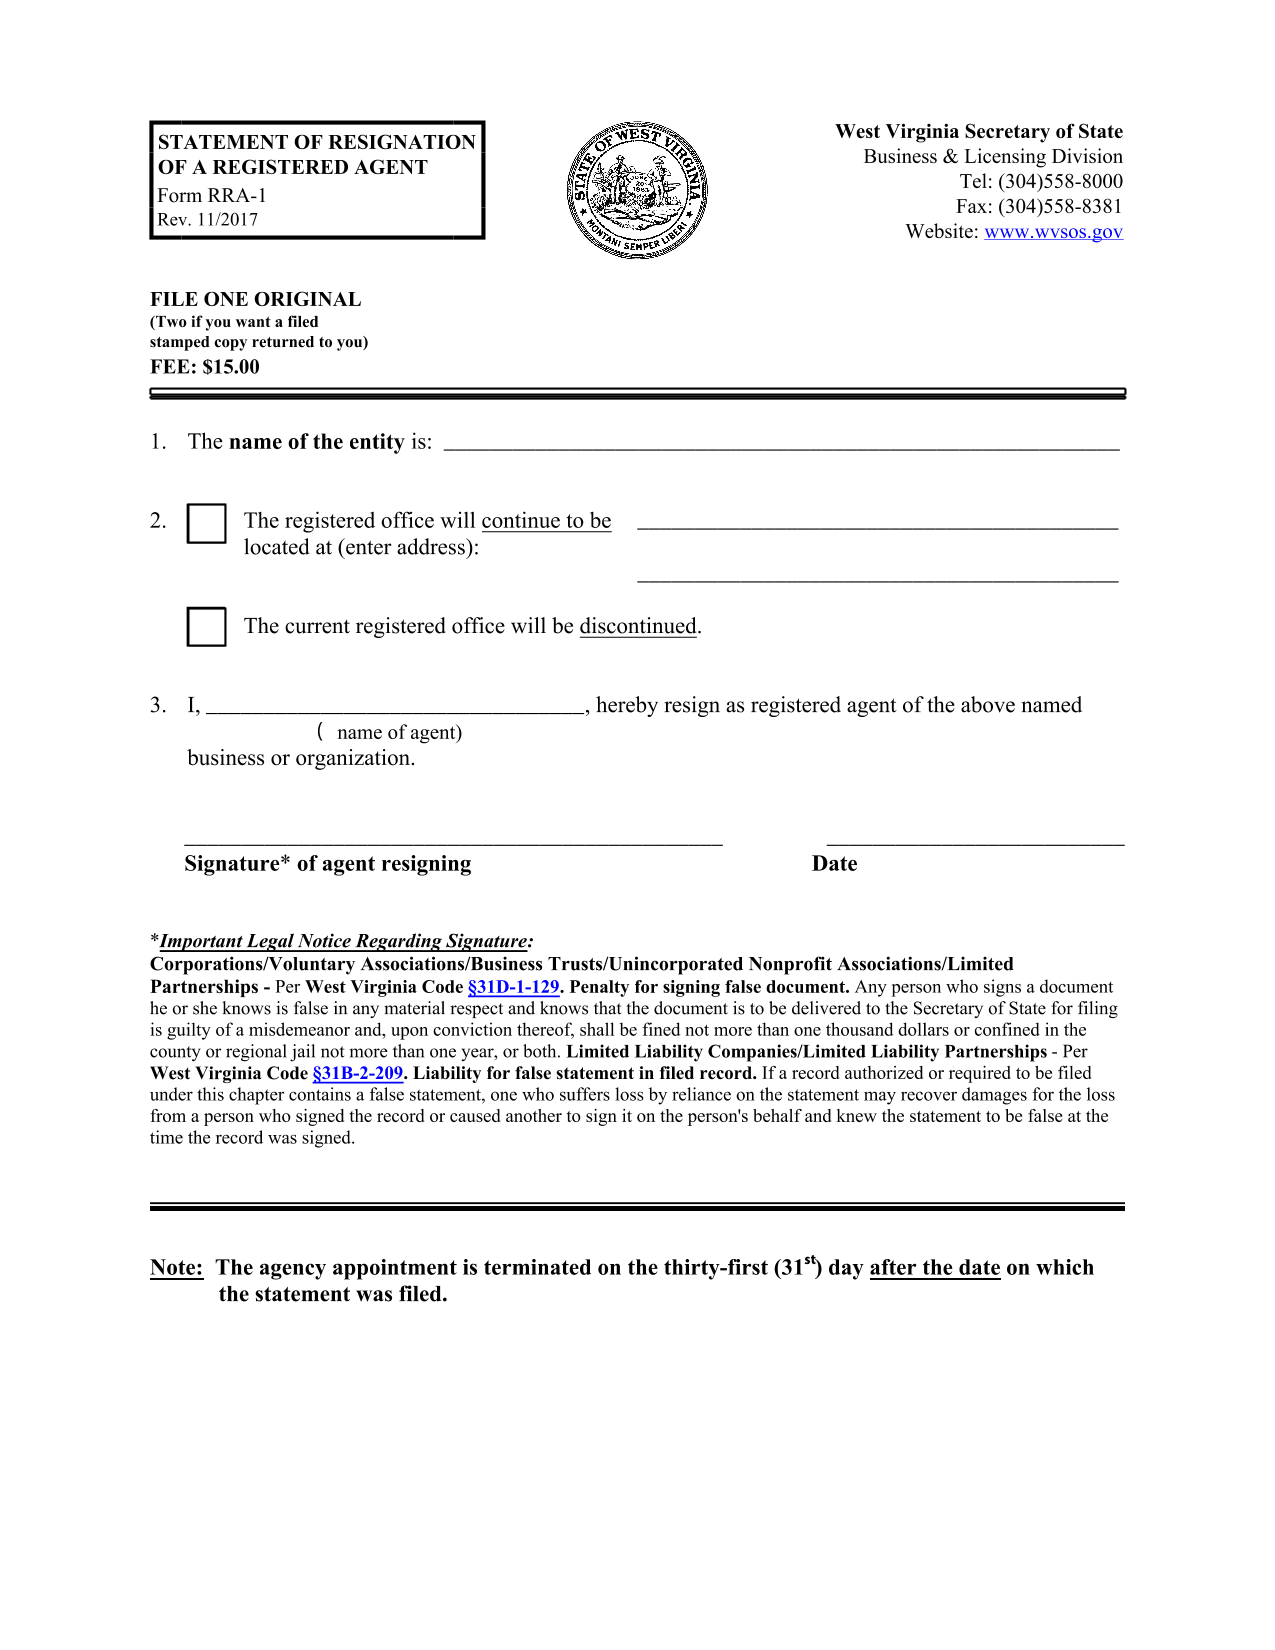 west-virginia-statement-of-resignation-of-a-registered-agent